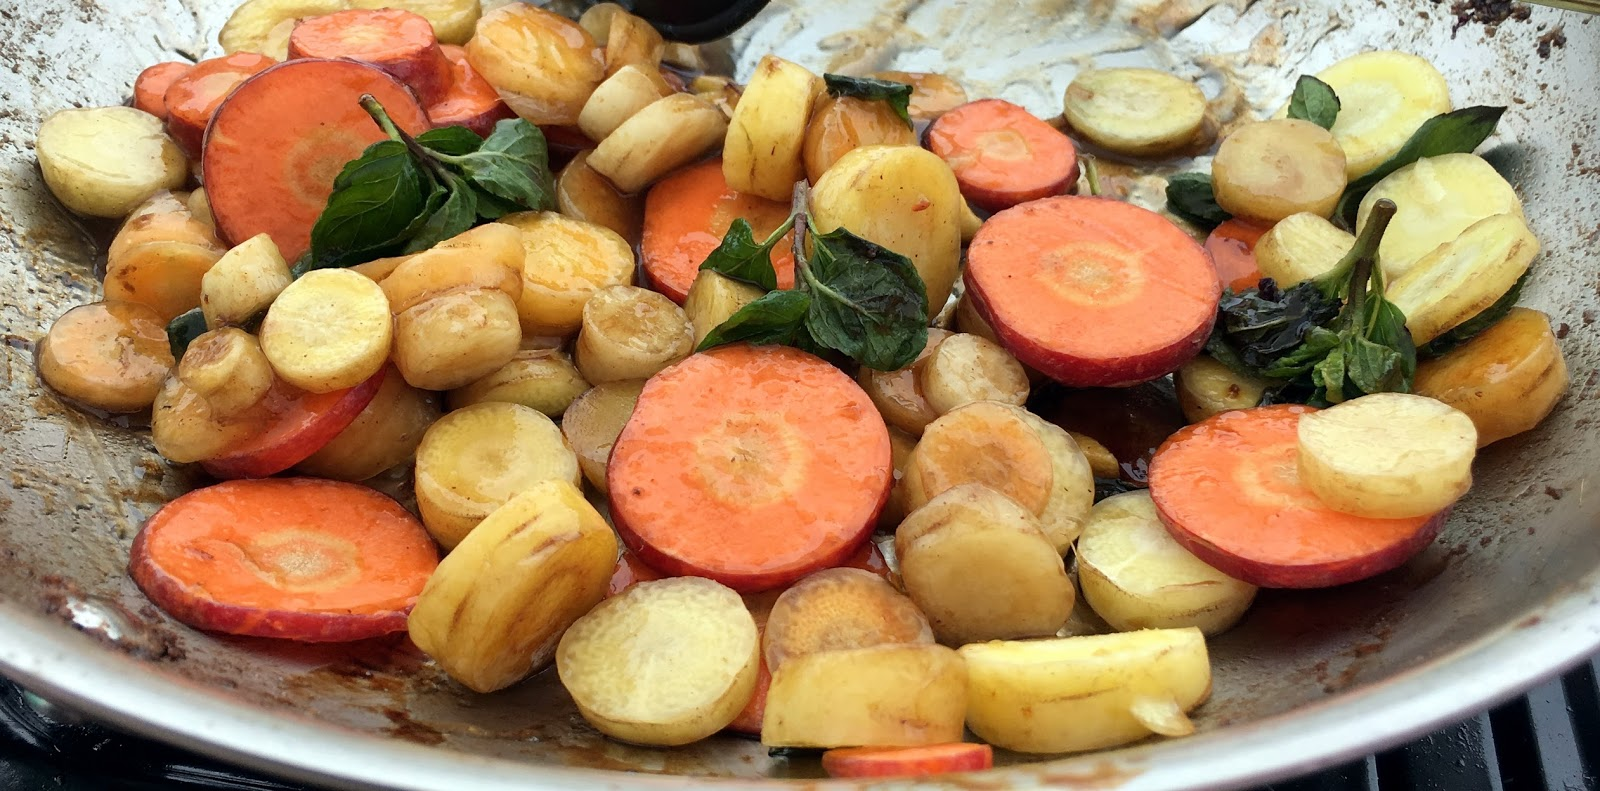 ... orange cranberry pomegranate glazed carrots 1 bunch small carrots